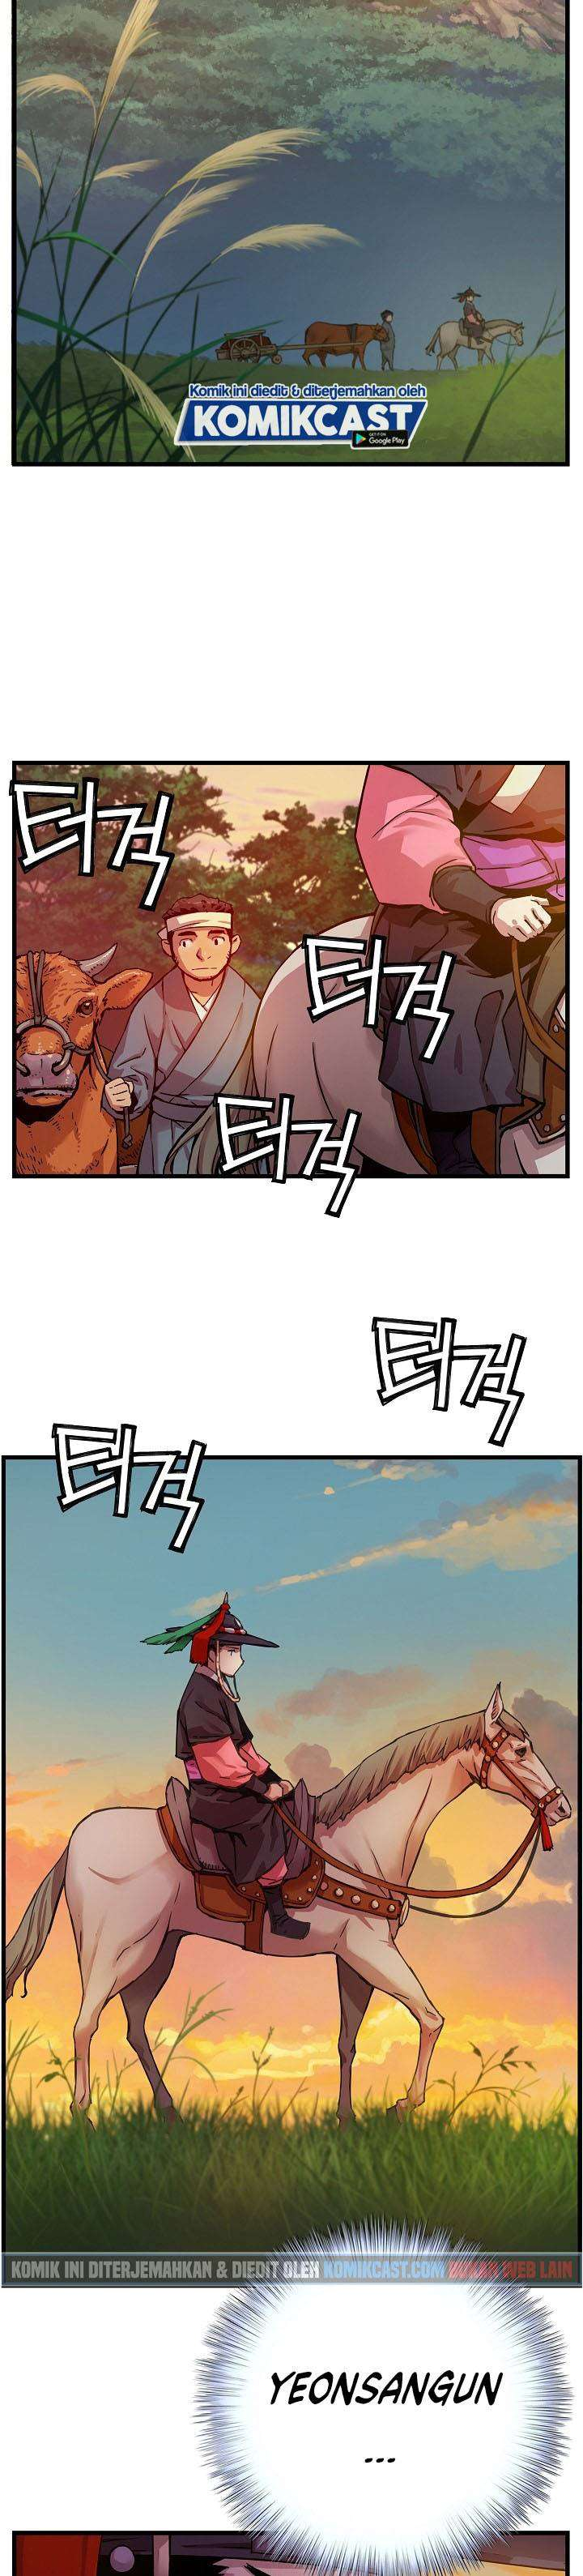 I Shall Live As a Prince Chapter 02 Bahasa Indonesia page 43